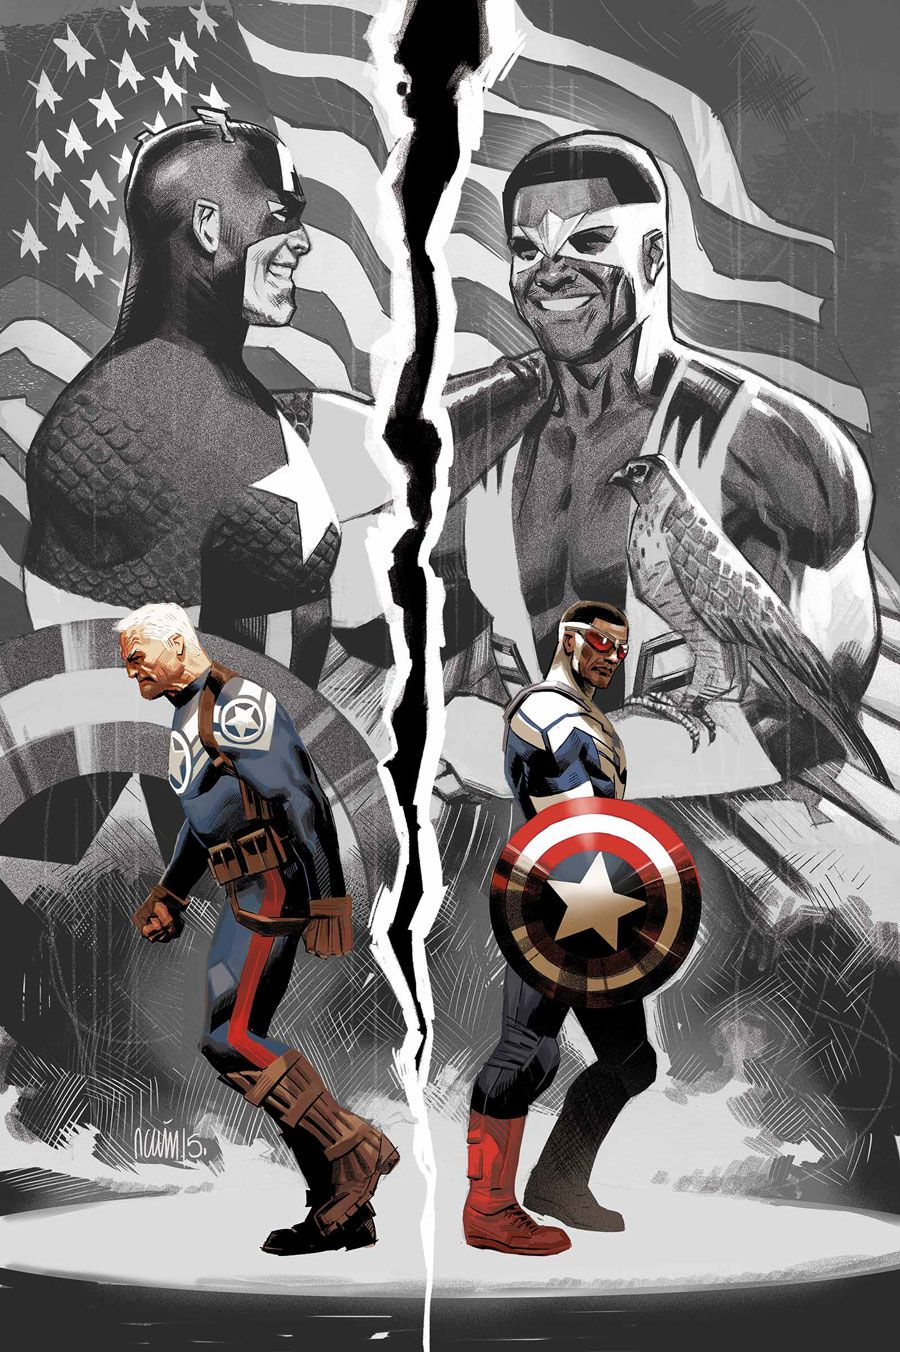 Preview: Sam Wilson, Captain America #1, Page 1 of 7 - Comic Book ...